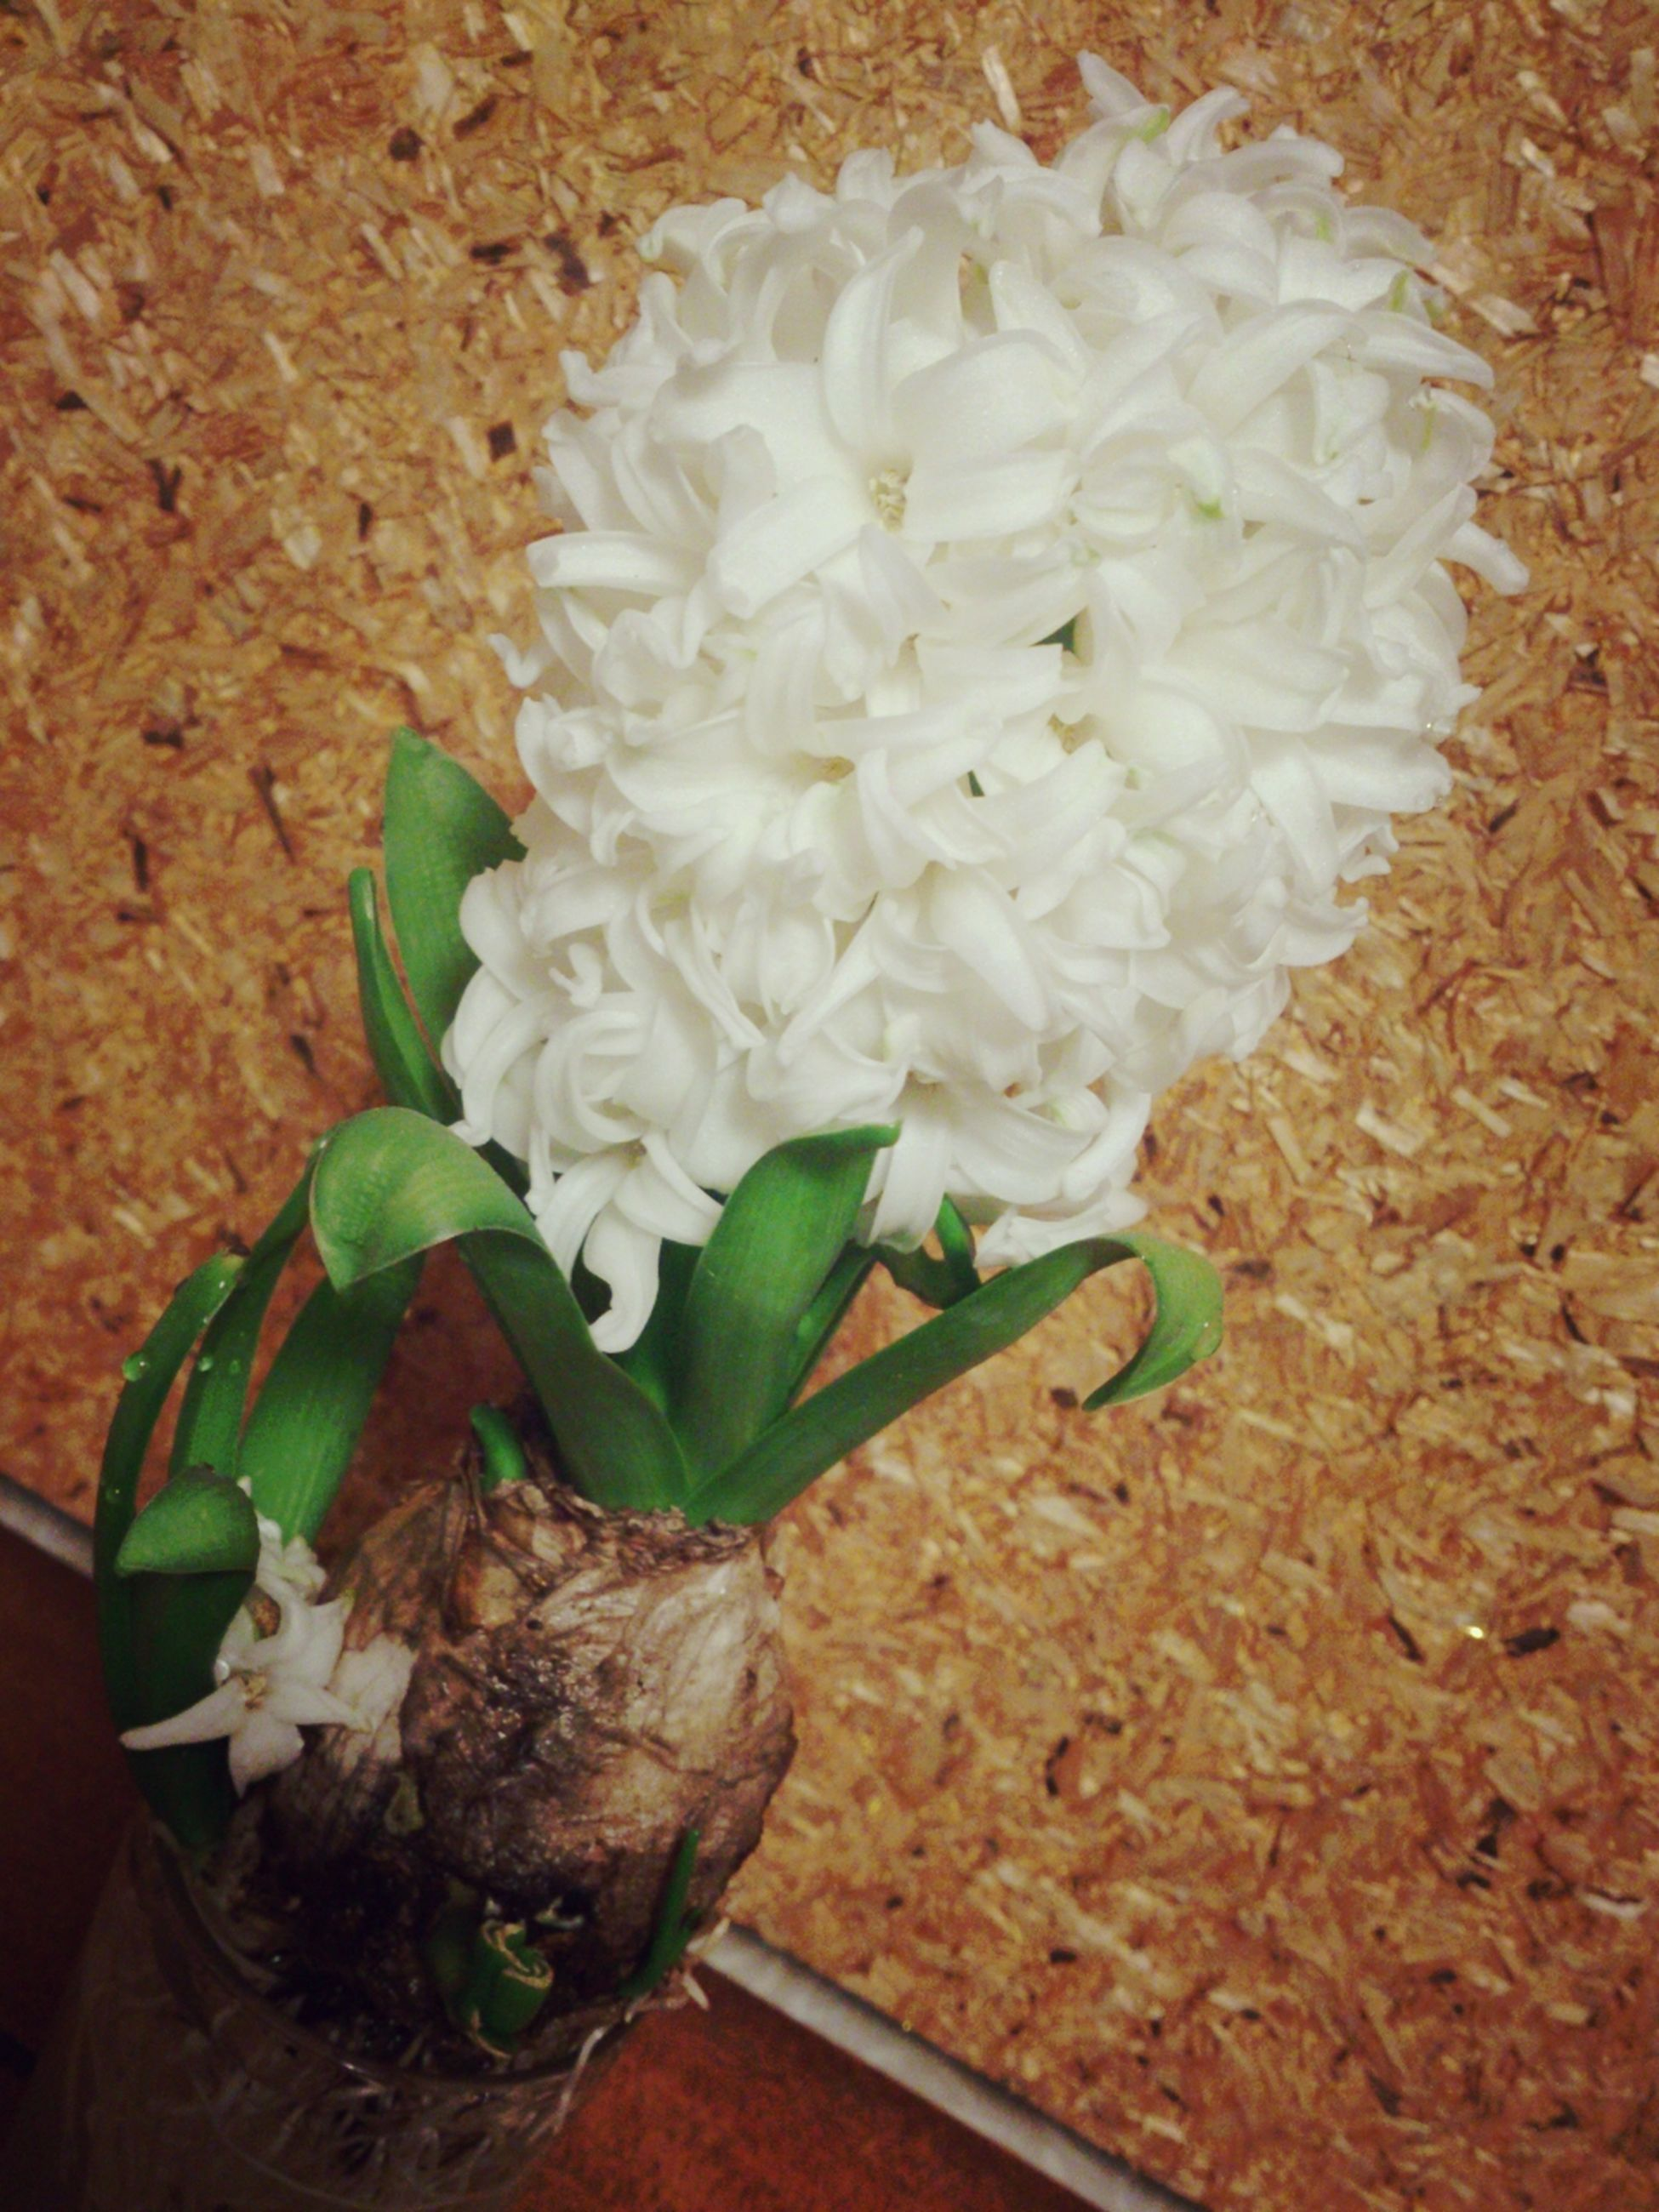 freshness, flower, indoors, high angle view, fragility, petal, growth, plant, food and drink, table, close-up, flower head, leaf, white color, beauty in nature, food, nature, still life, no people, directly above